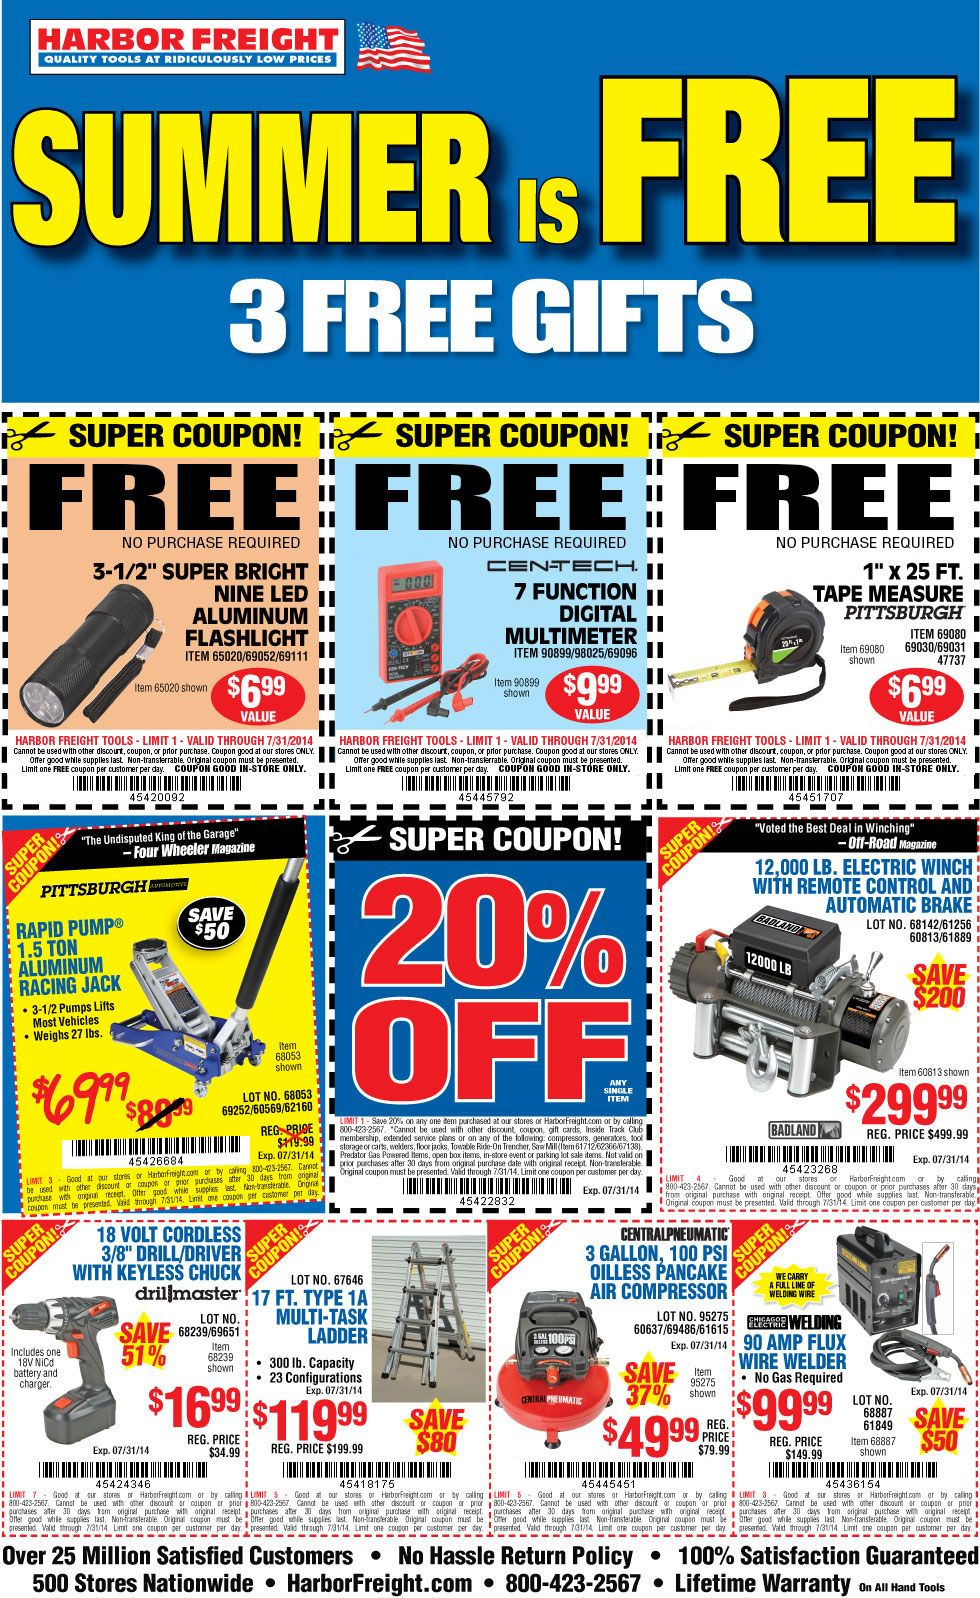 Free flashlight multimeter and tape measure at harbor freight free flashlight multimeter and tape measure at harbor freight closet of free samples get free samples by mail free stuff closetsamp fandeluxe Choice Image